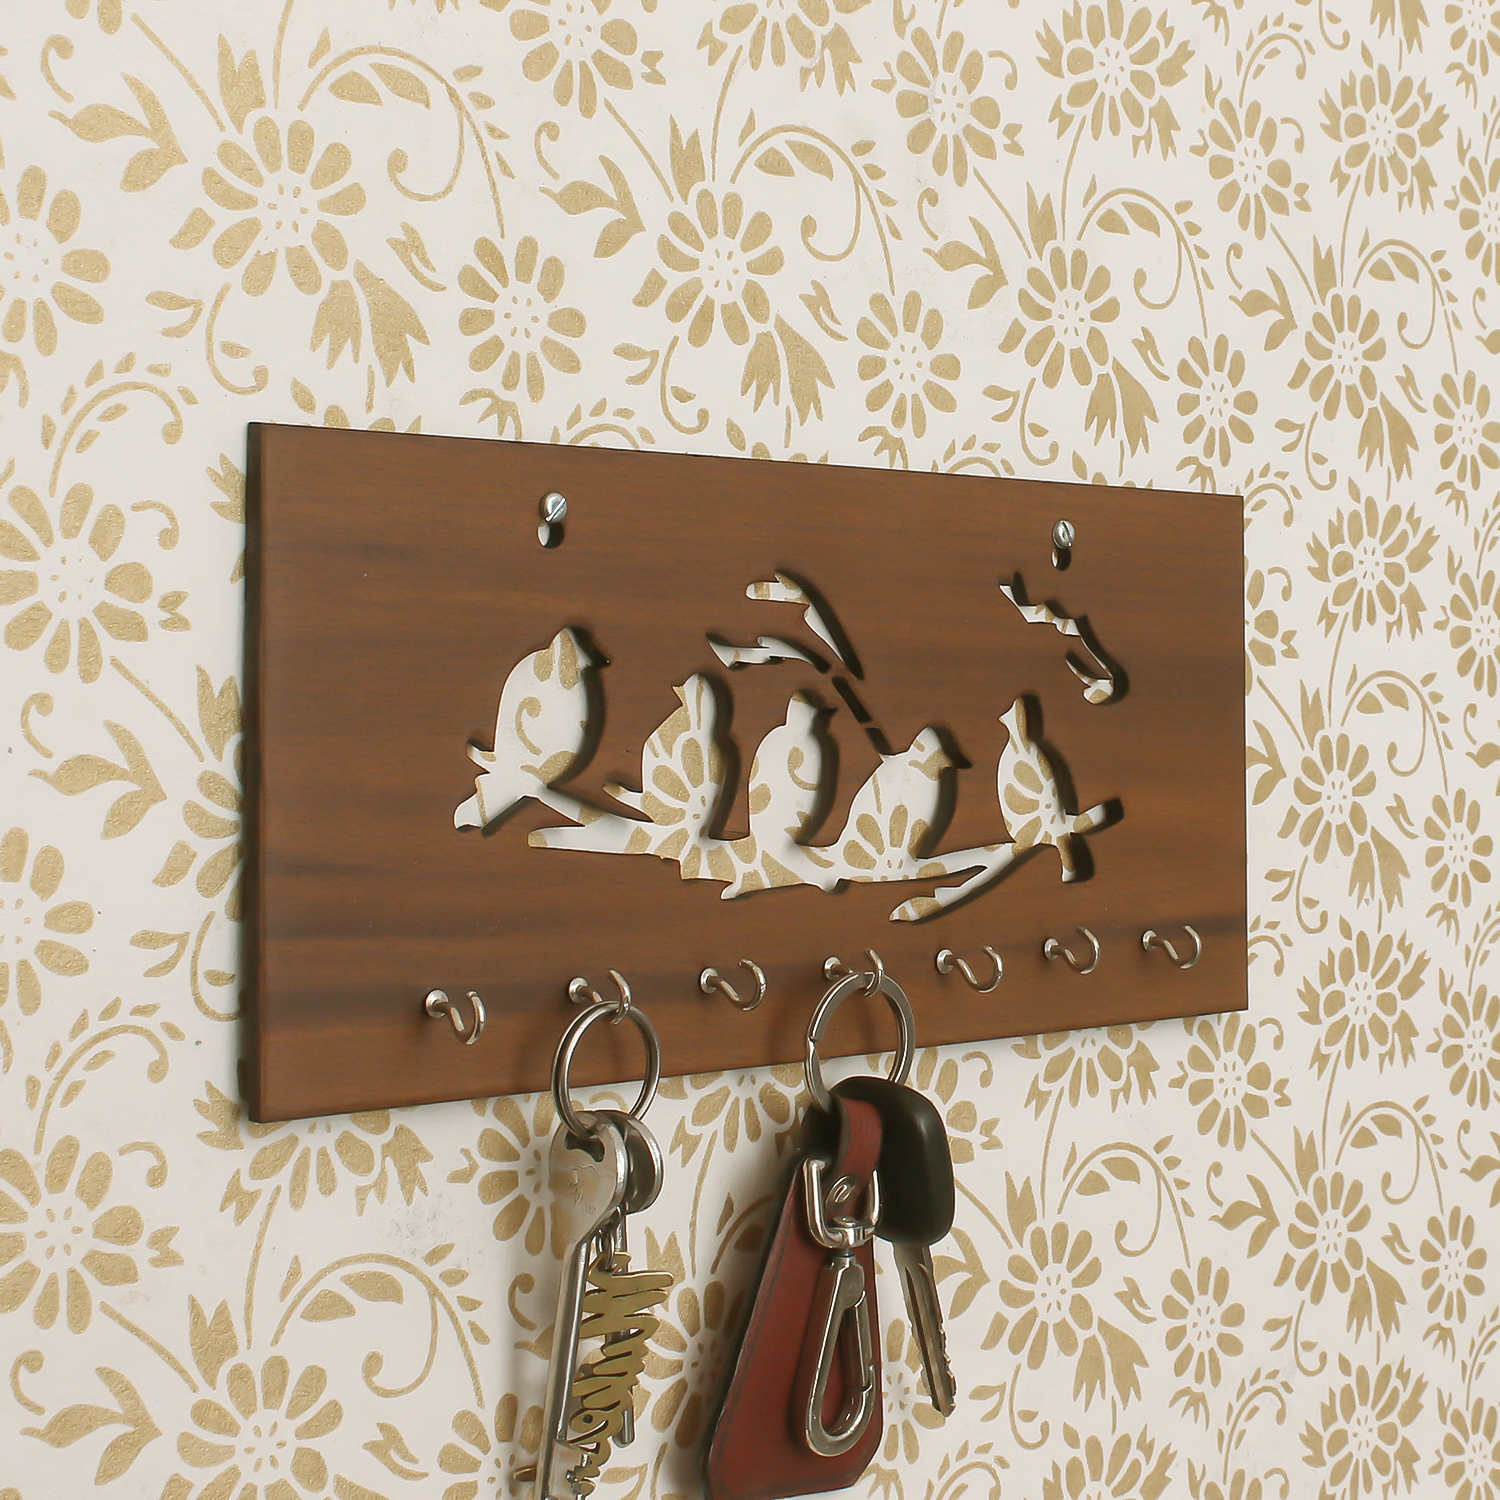 Birds Theme Wooden Key Holder with 7 Hooks Indian Home Decor